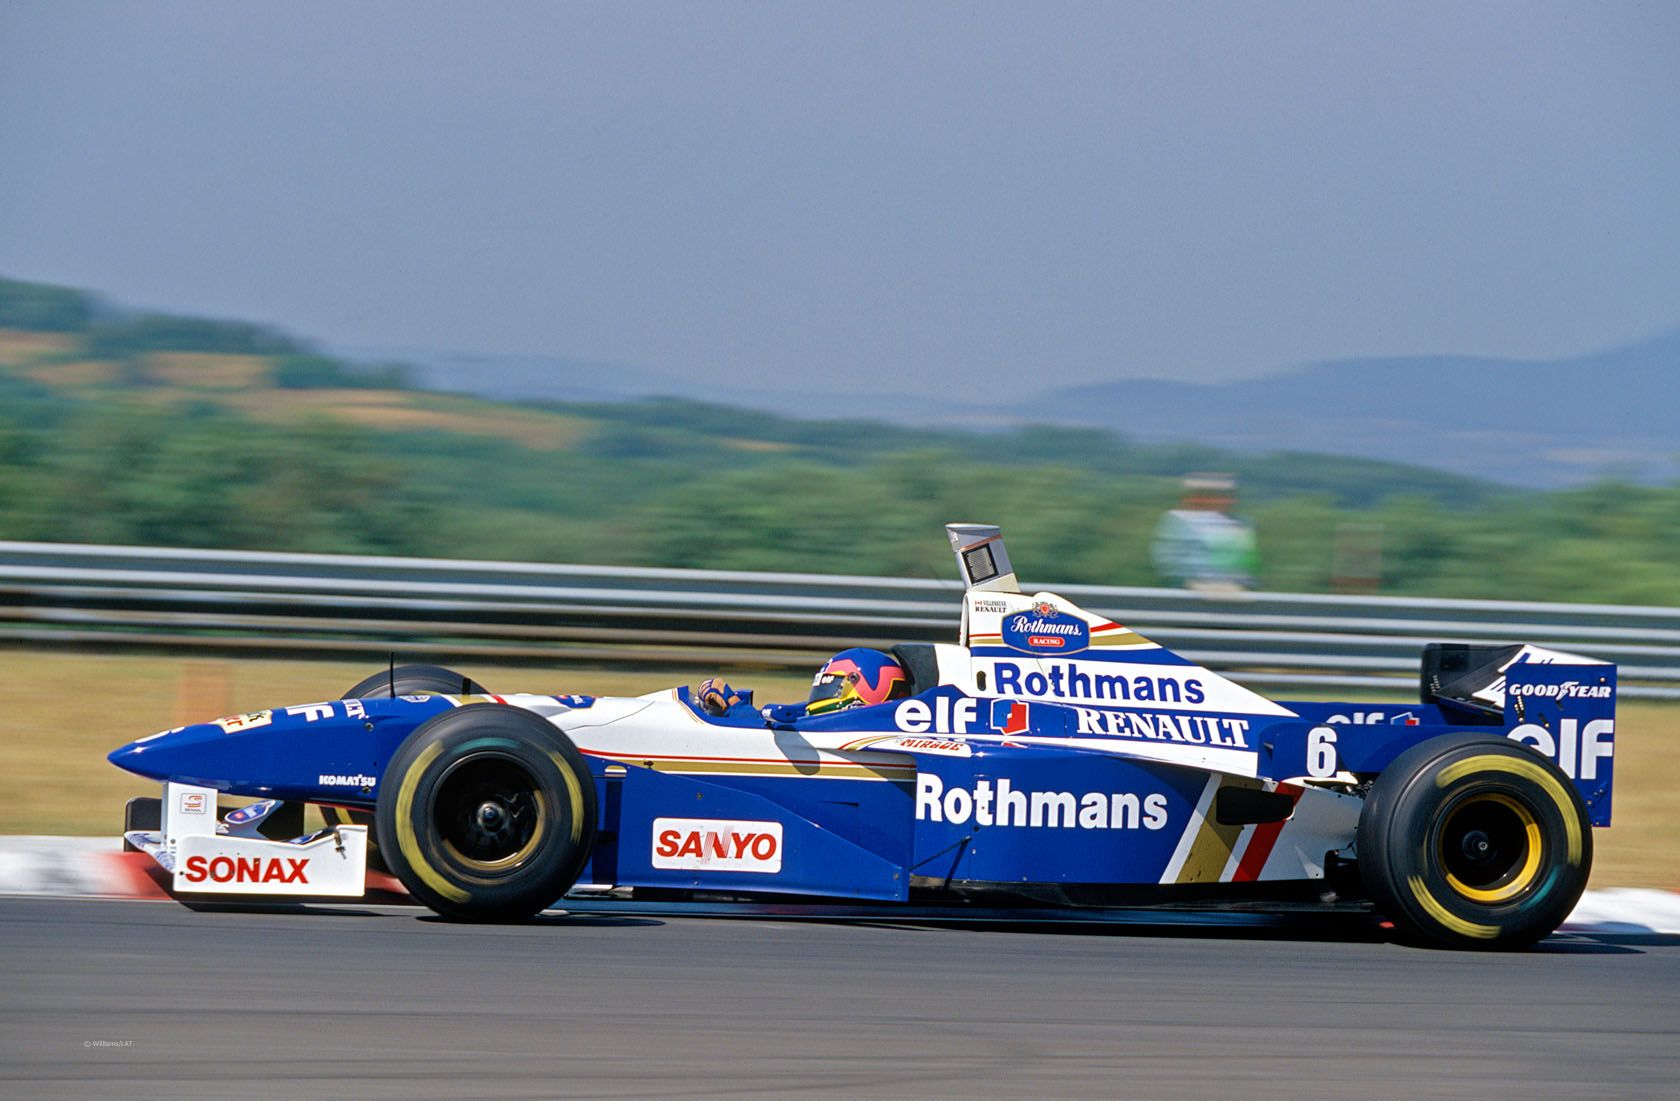 Williams FW18  | Racing, Renault formula 1, Formula 1 car